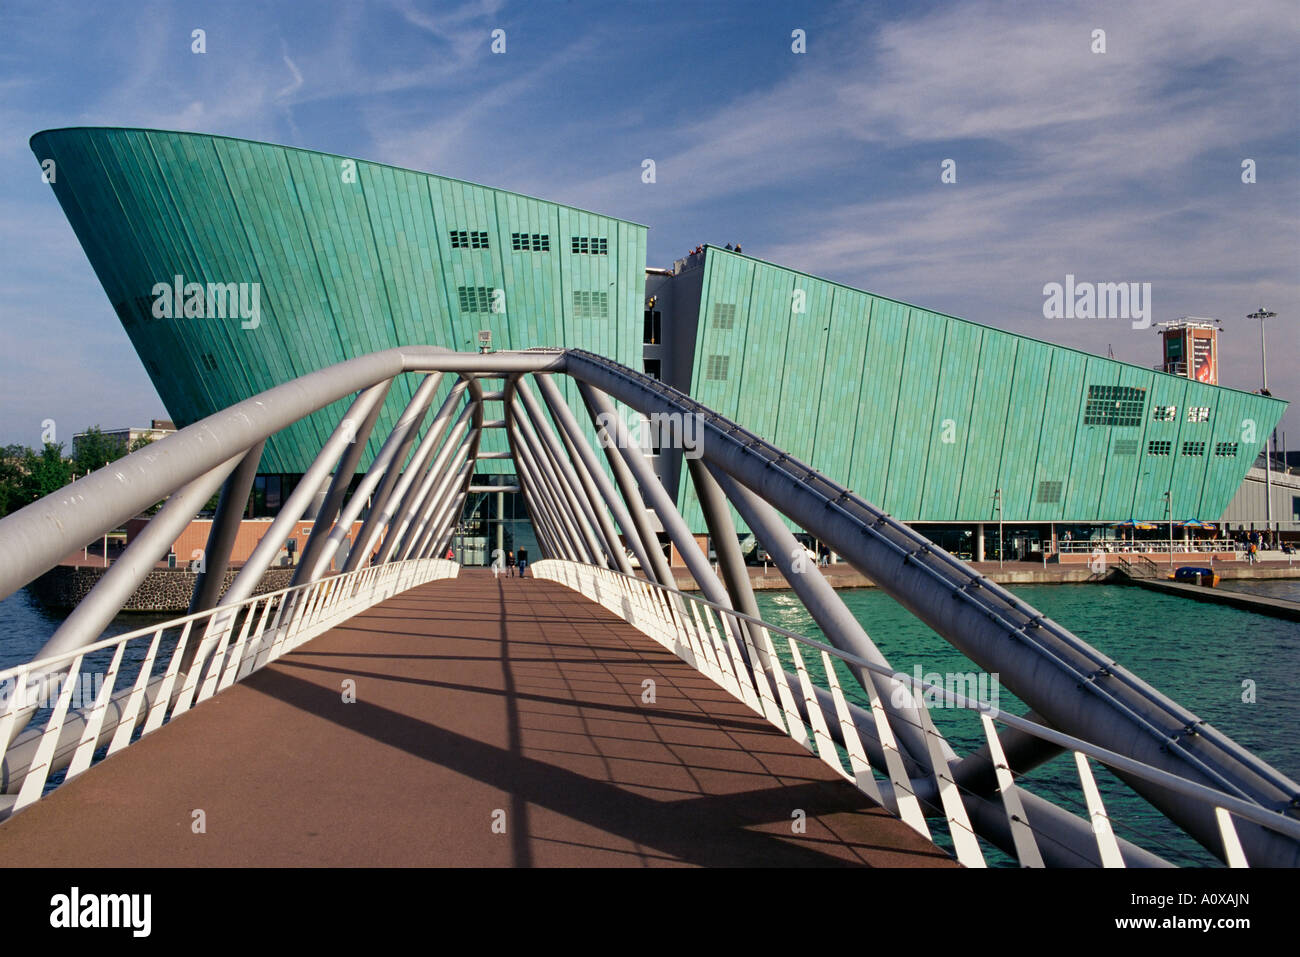 New Metropolis Science and Technology Centre designed by Renzo Piano Amsterdam The Netherlands Holland Europe - Stock Image